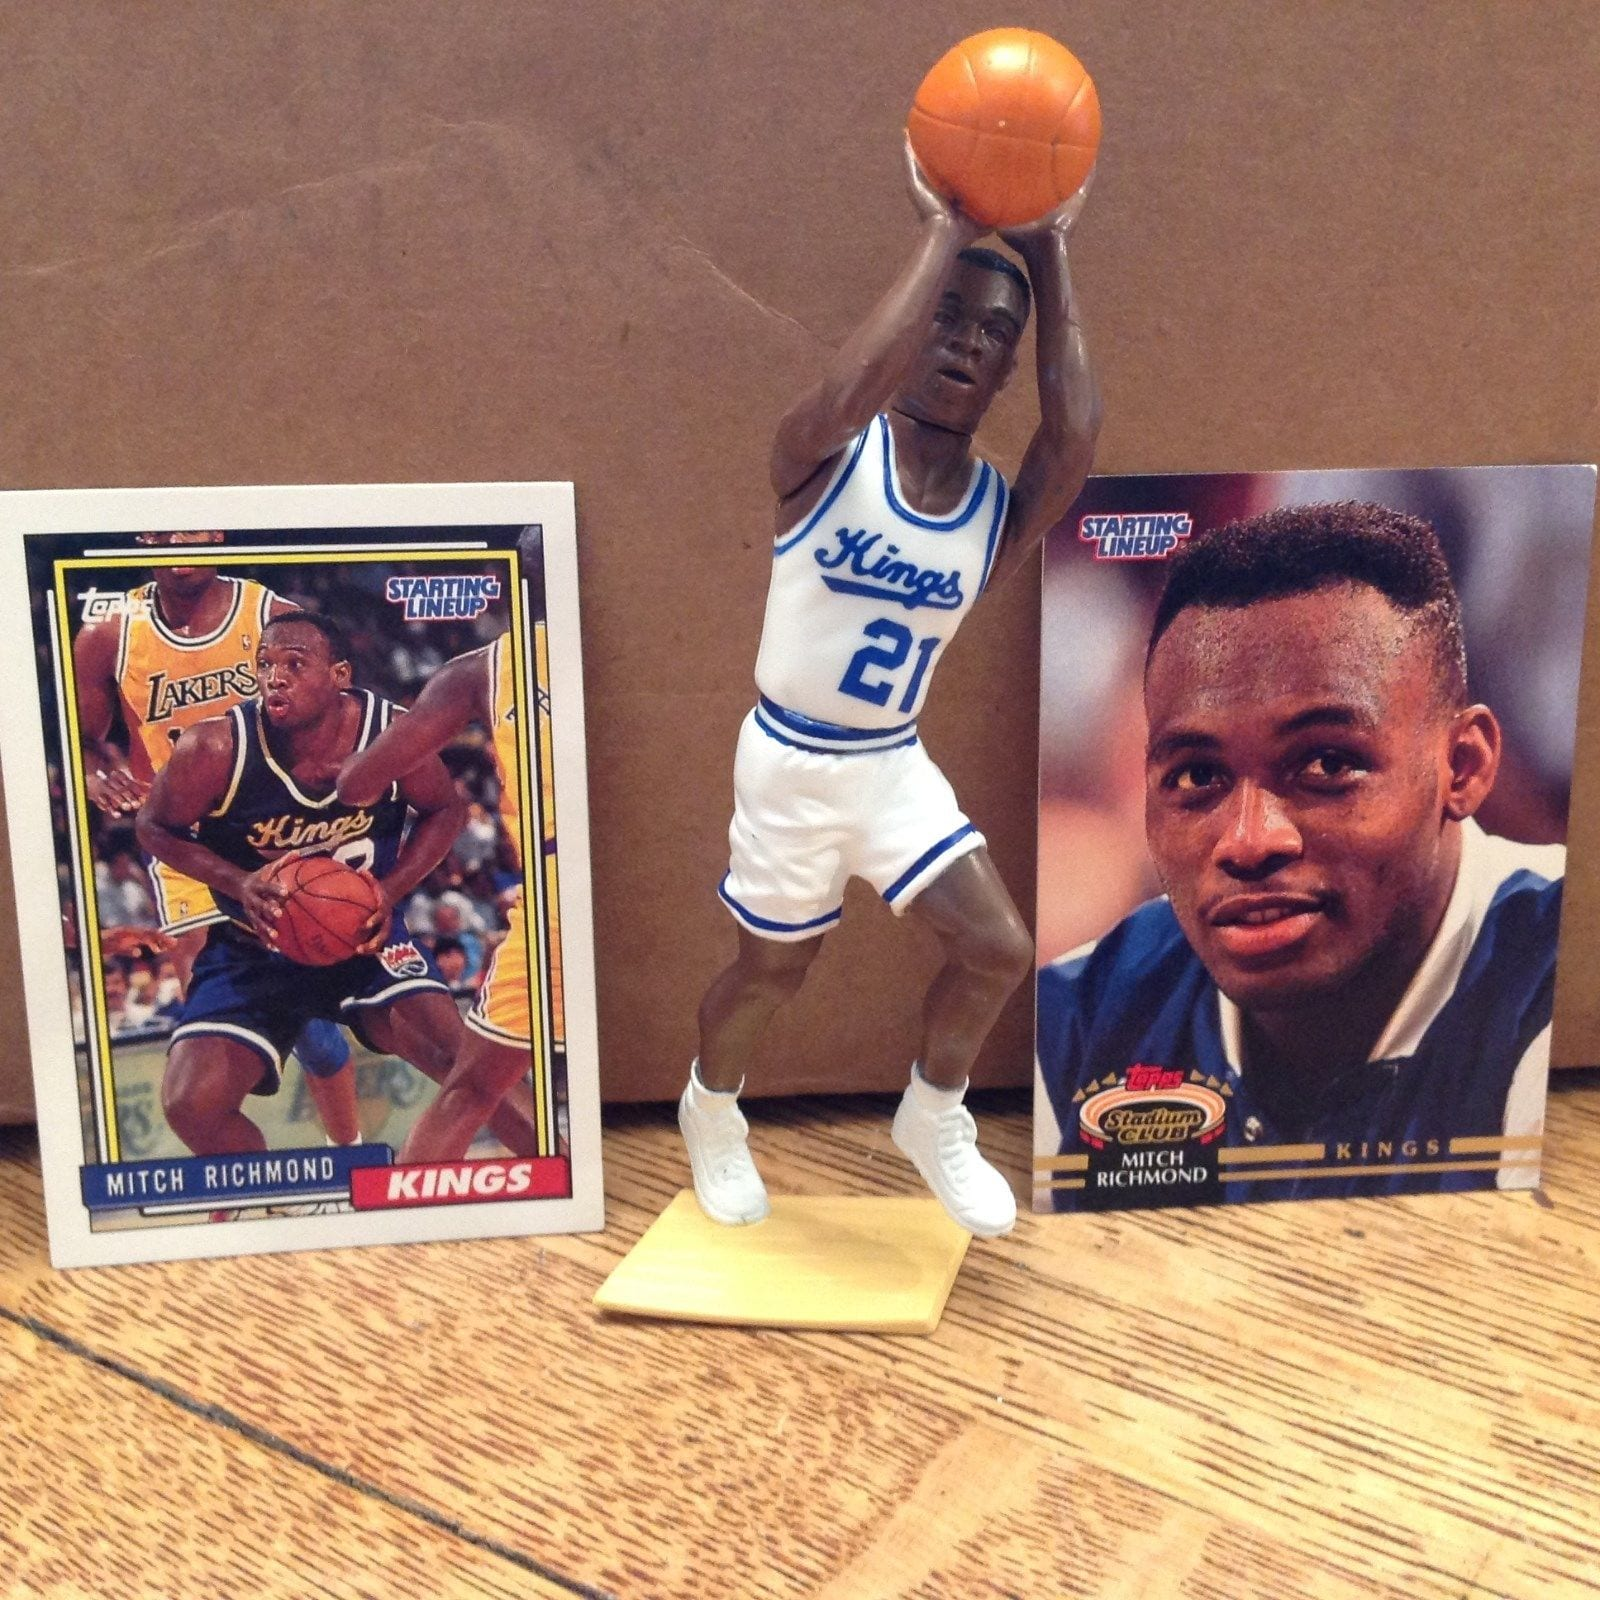 afe255edf25 1993 Mitch Richmond Starting Lineup Kenner launched its inaugural Starting  Lineup set in 1988